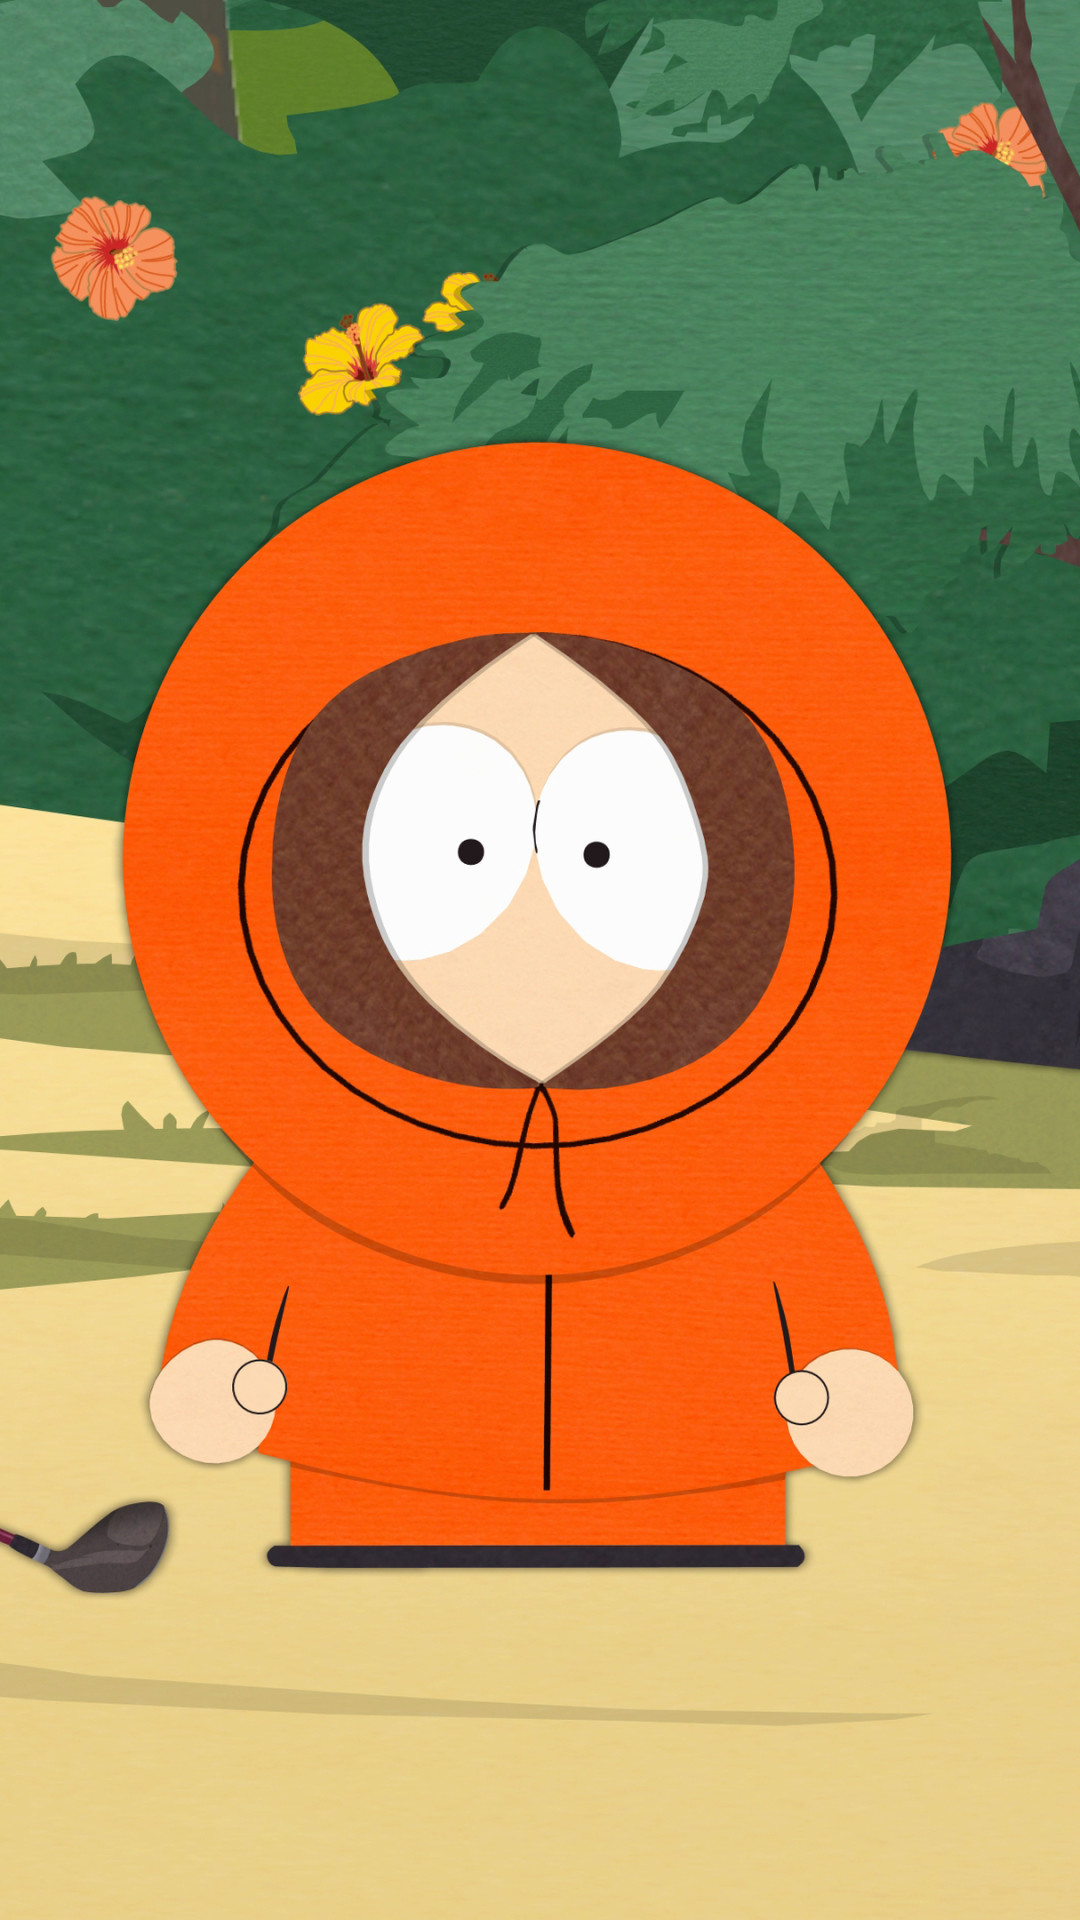 Kenny south park wallpaper 64 images - Pics of kenny from south park ...